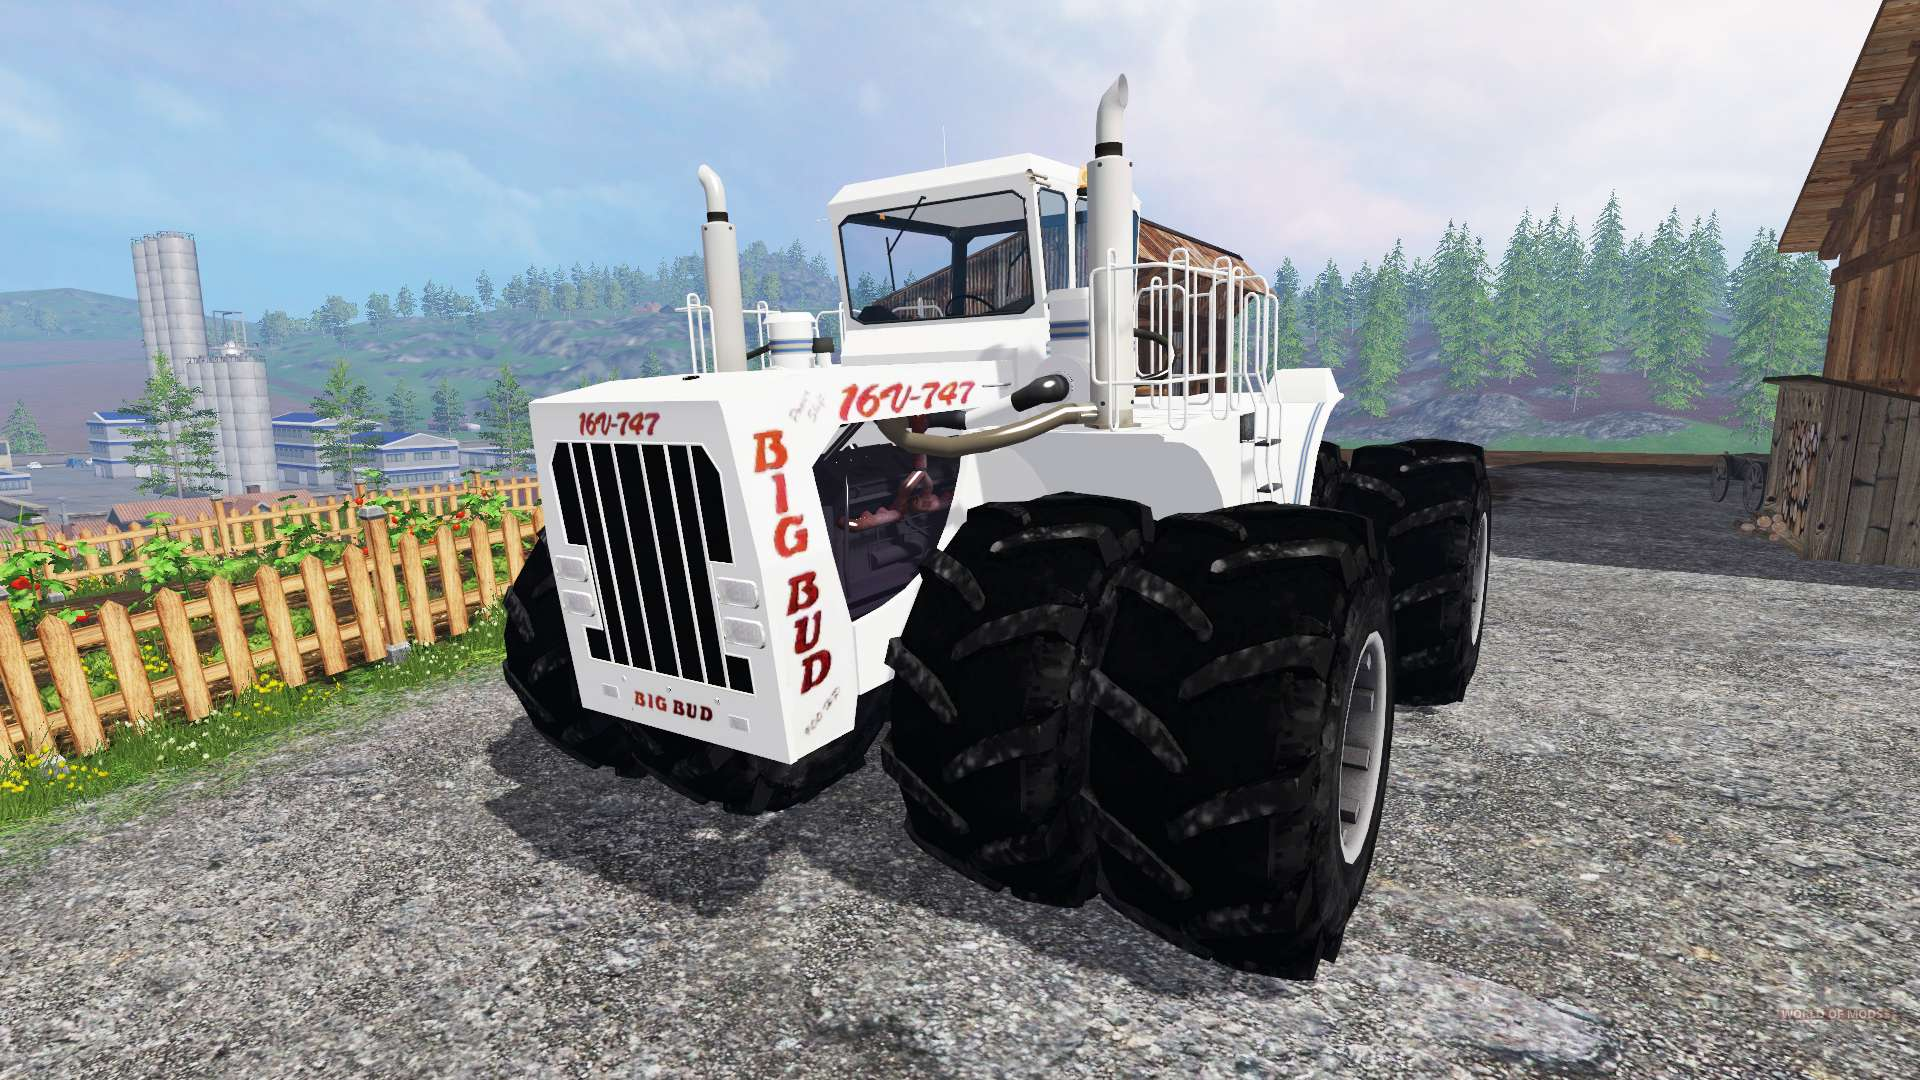 Big Bud 747 >> Big Bud-747 v3.0 for Farming Simulator 2015